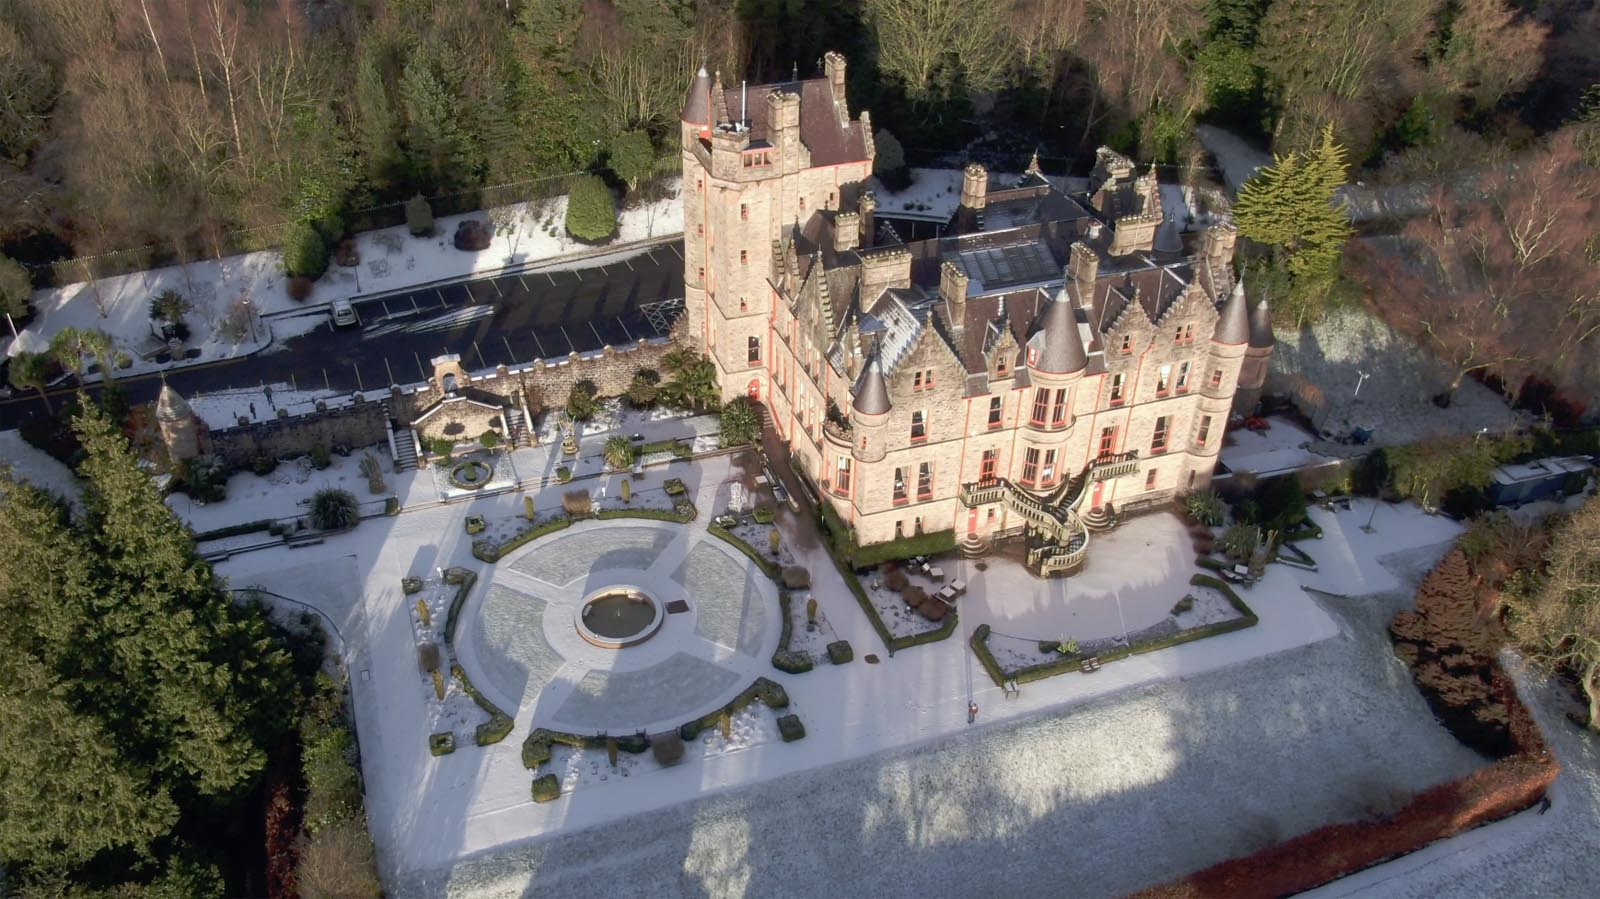 Aerial drone photography and video production services Dublin and Ireland portfolio - changing seasons in one video of Belfast Castle, Northern Ireland, video screenshot 4